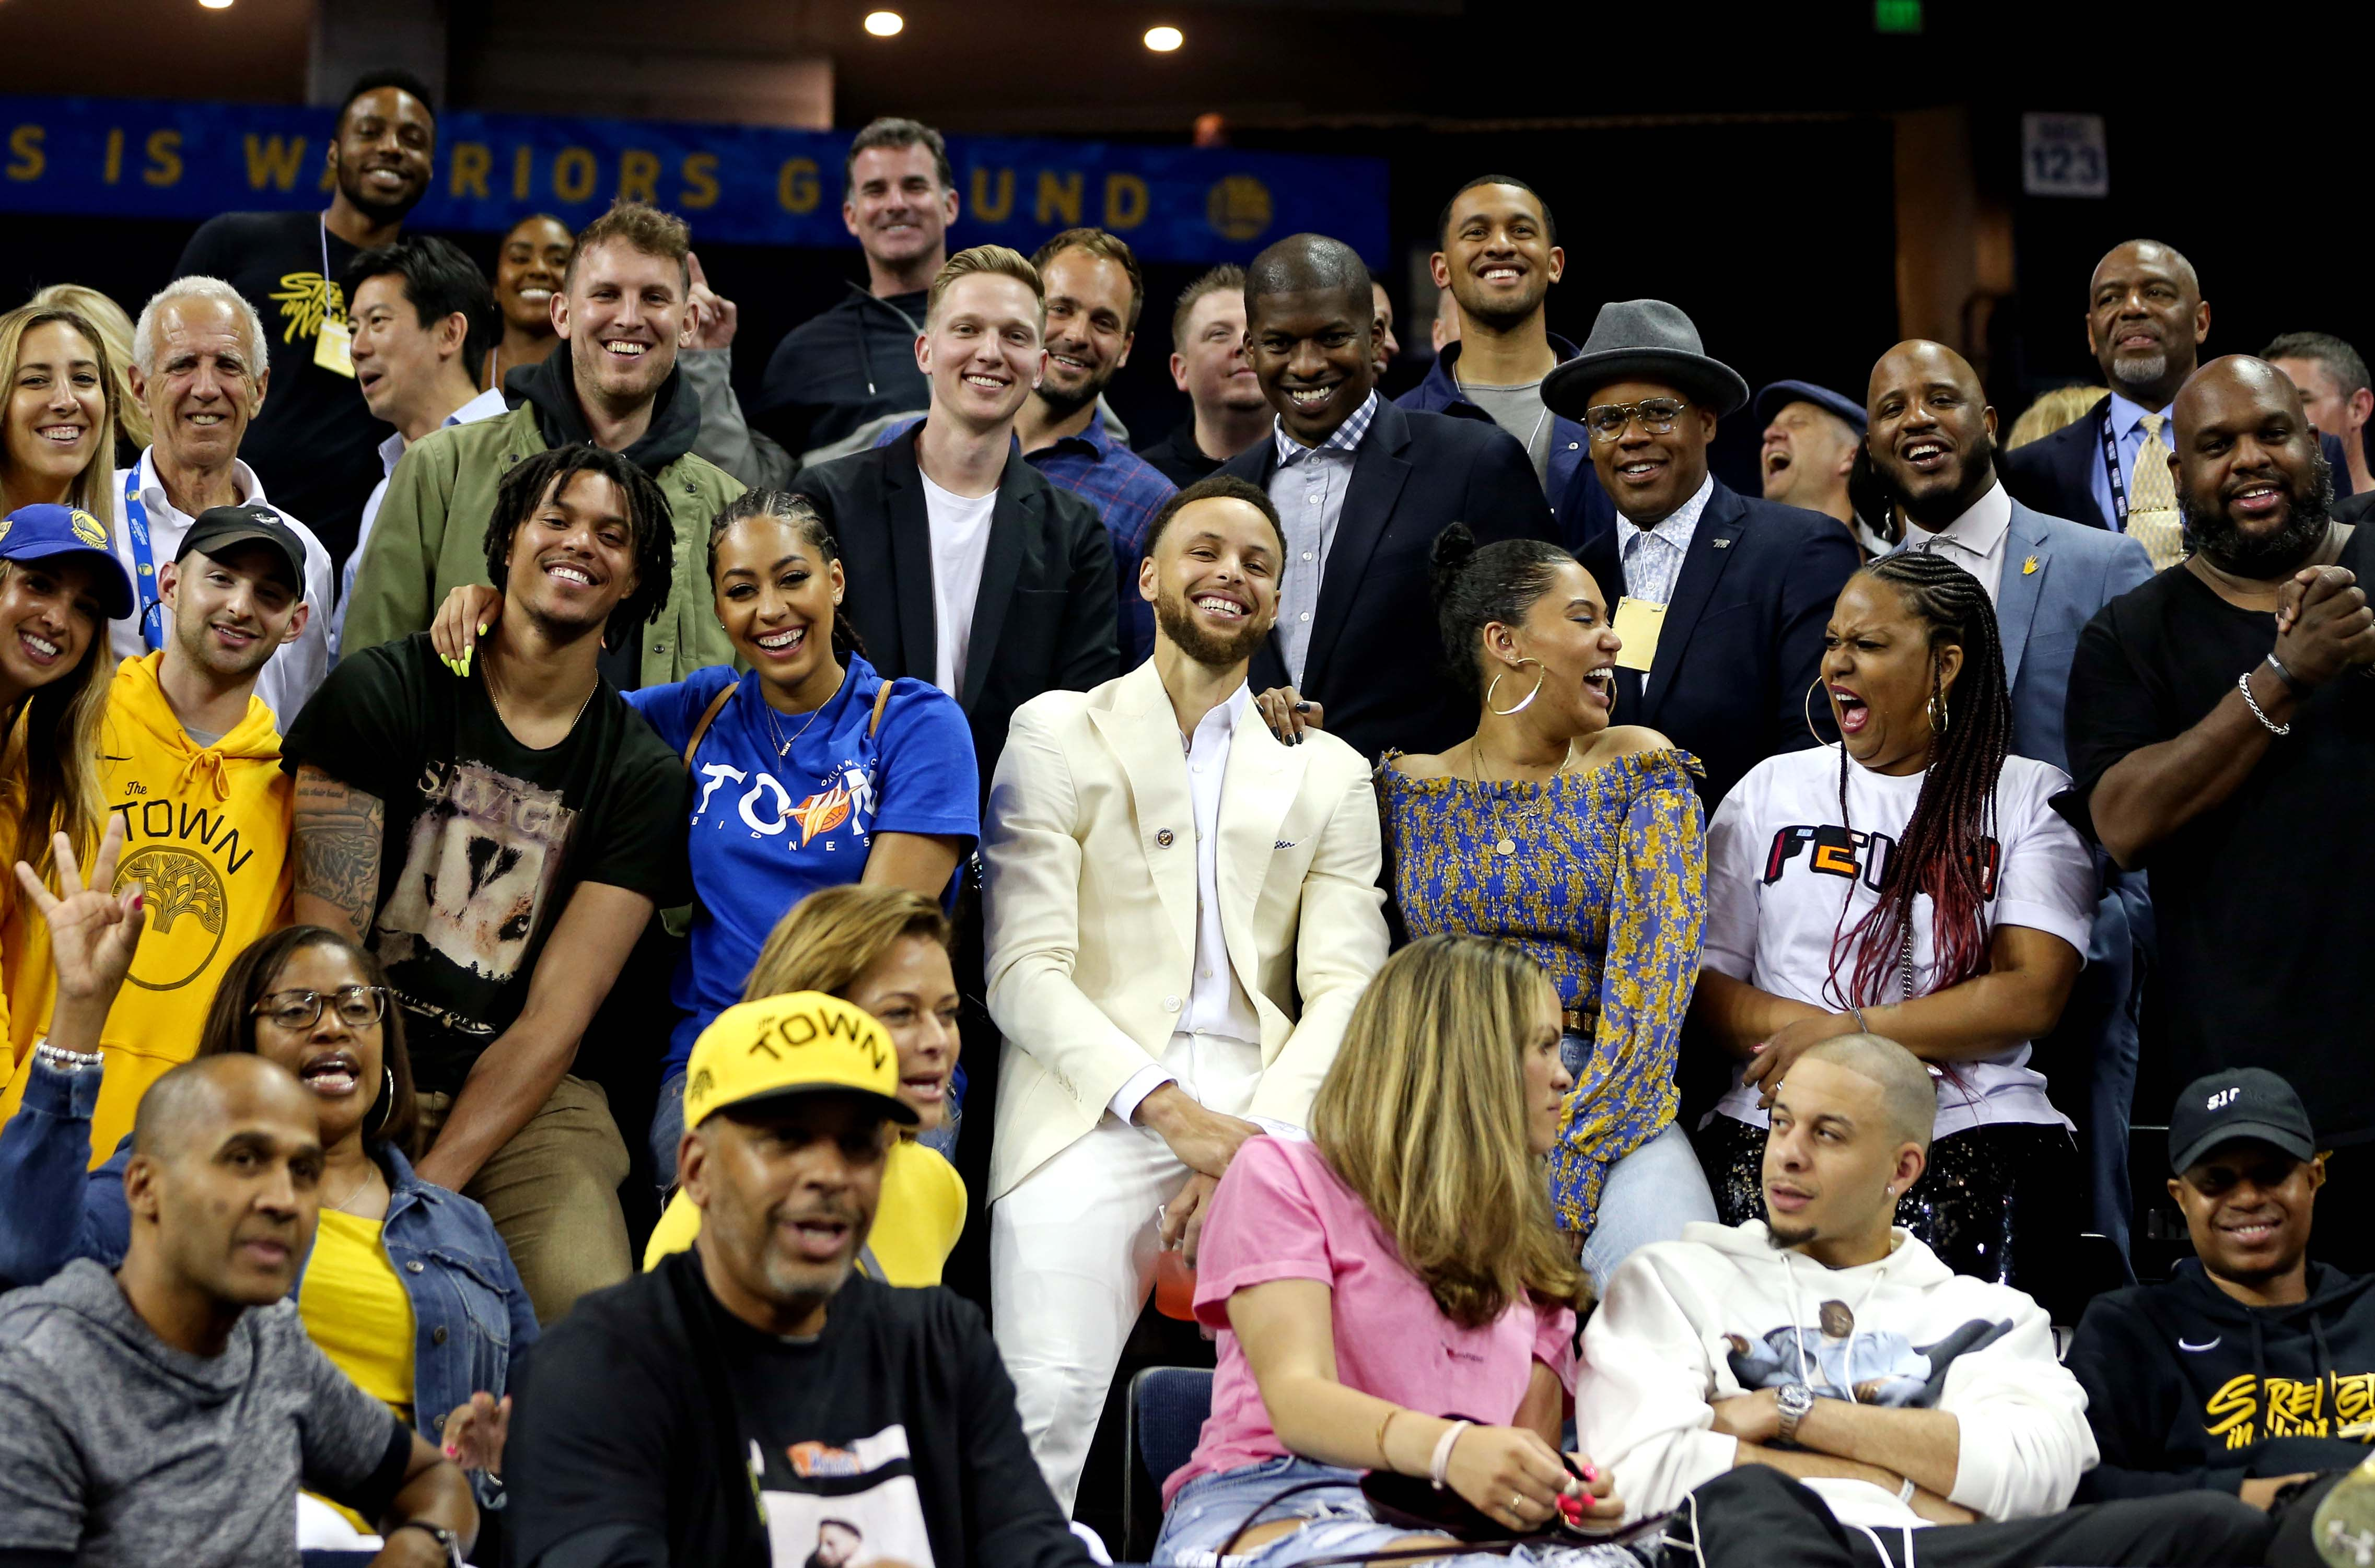 Steph Curry Family Oracle Arena Game 6 NBA Finals 2019